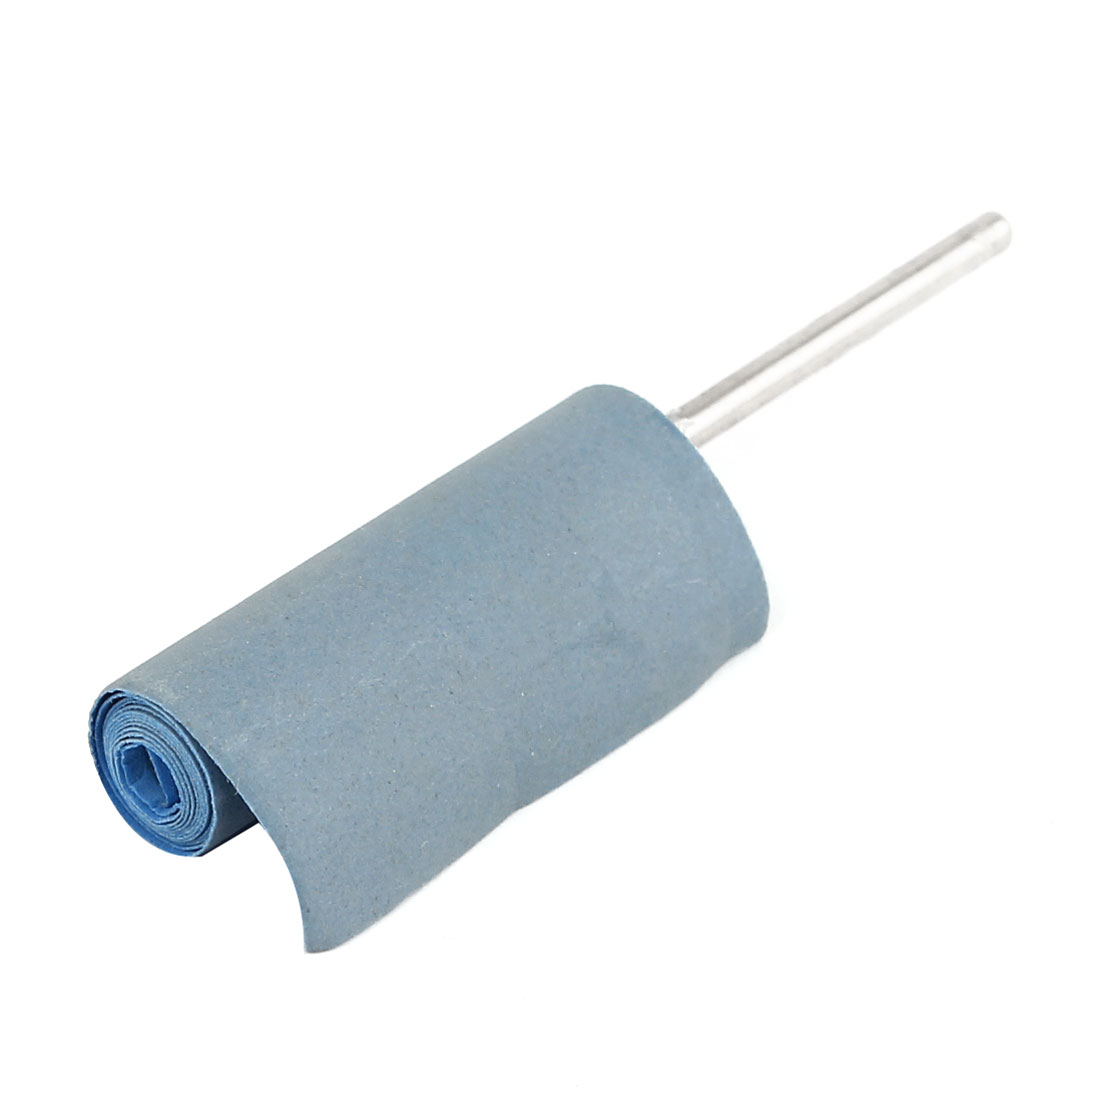 2.35mm 2000 Grit Abrasive Cloth Grinding Heads Silver Tone Light Blue for Rotary Tool